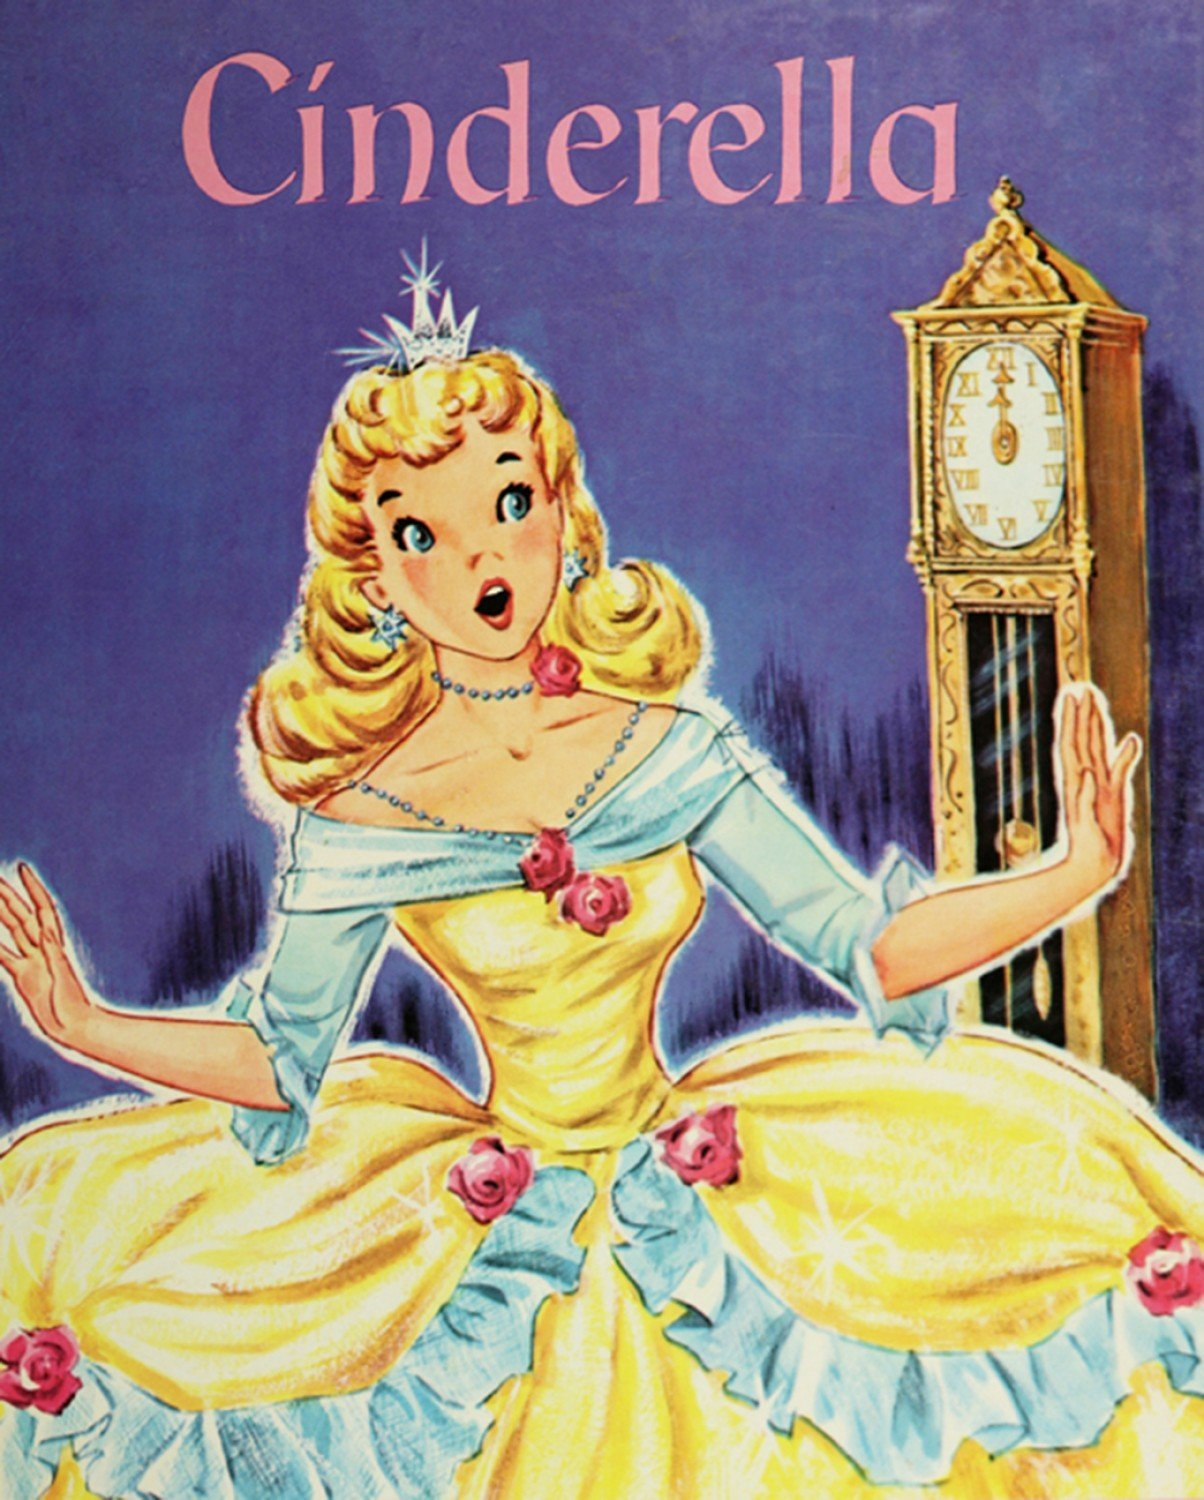 Cinderella Vintage Storybook Children's Fabric Panels 35.5 x 44 Inches